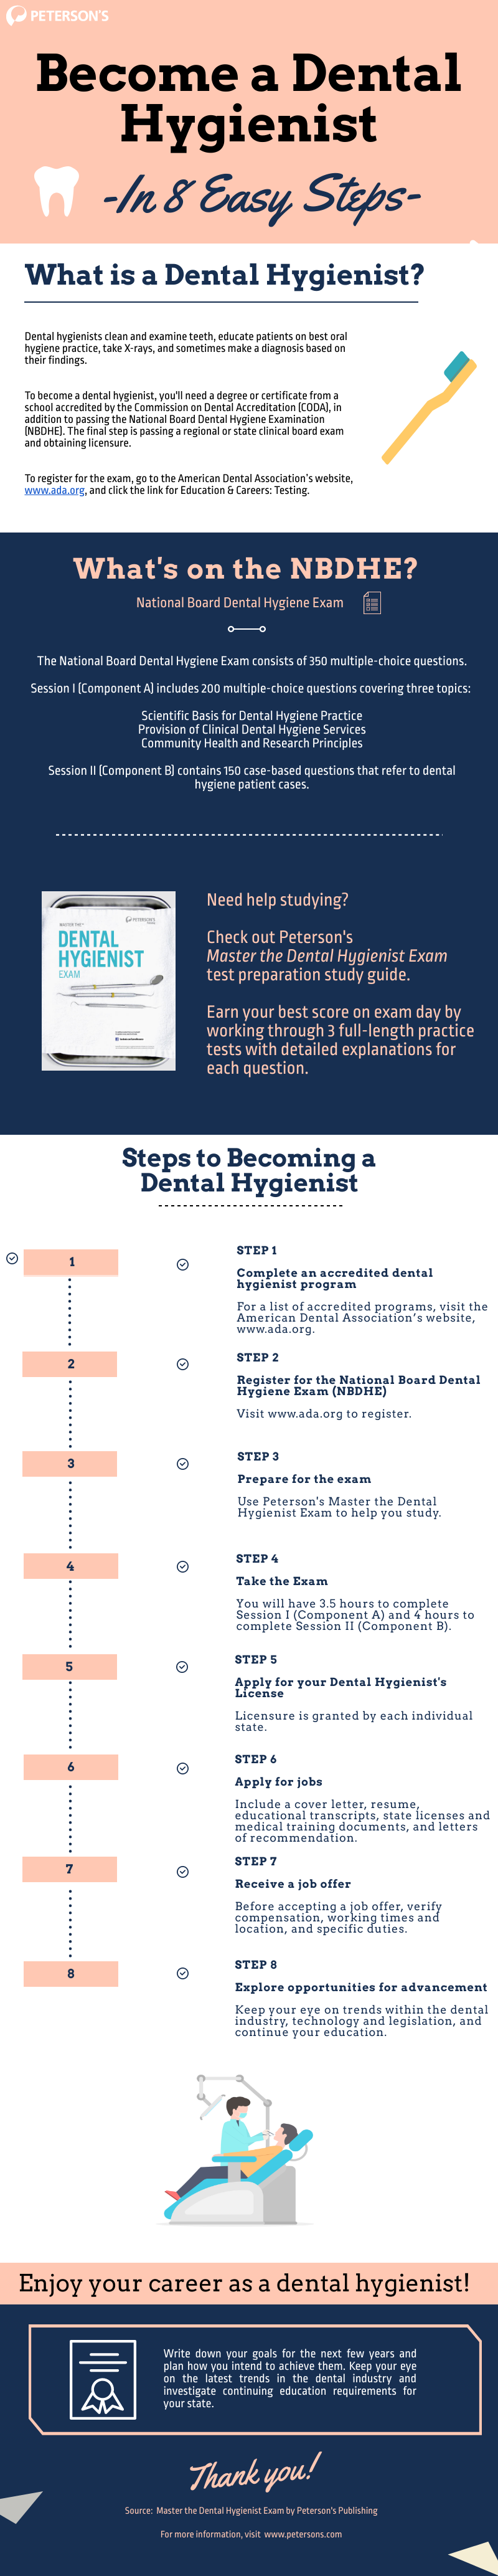 how to become a dental hygienist infographic